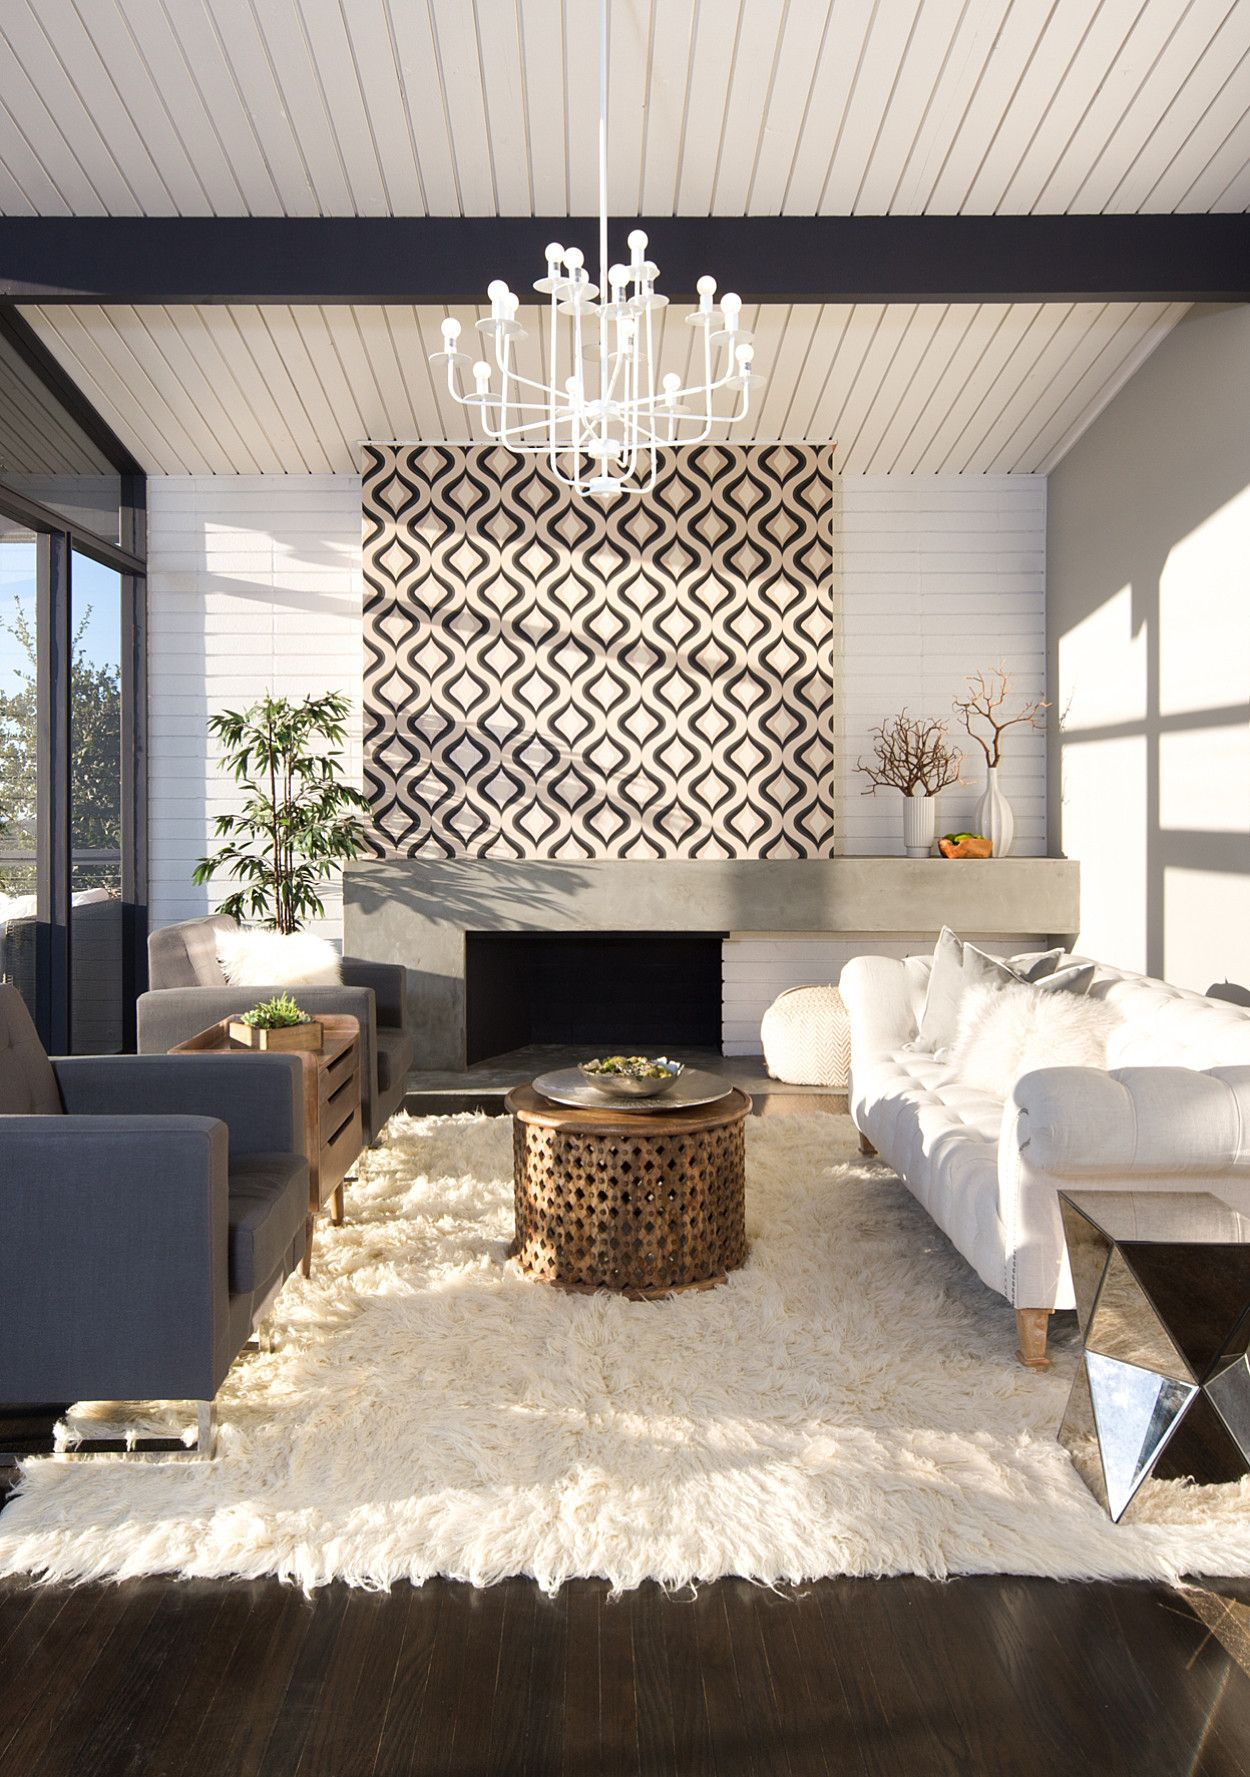 From dated to upgraded a midcentury house gets a home renovation